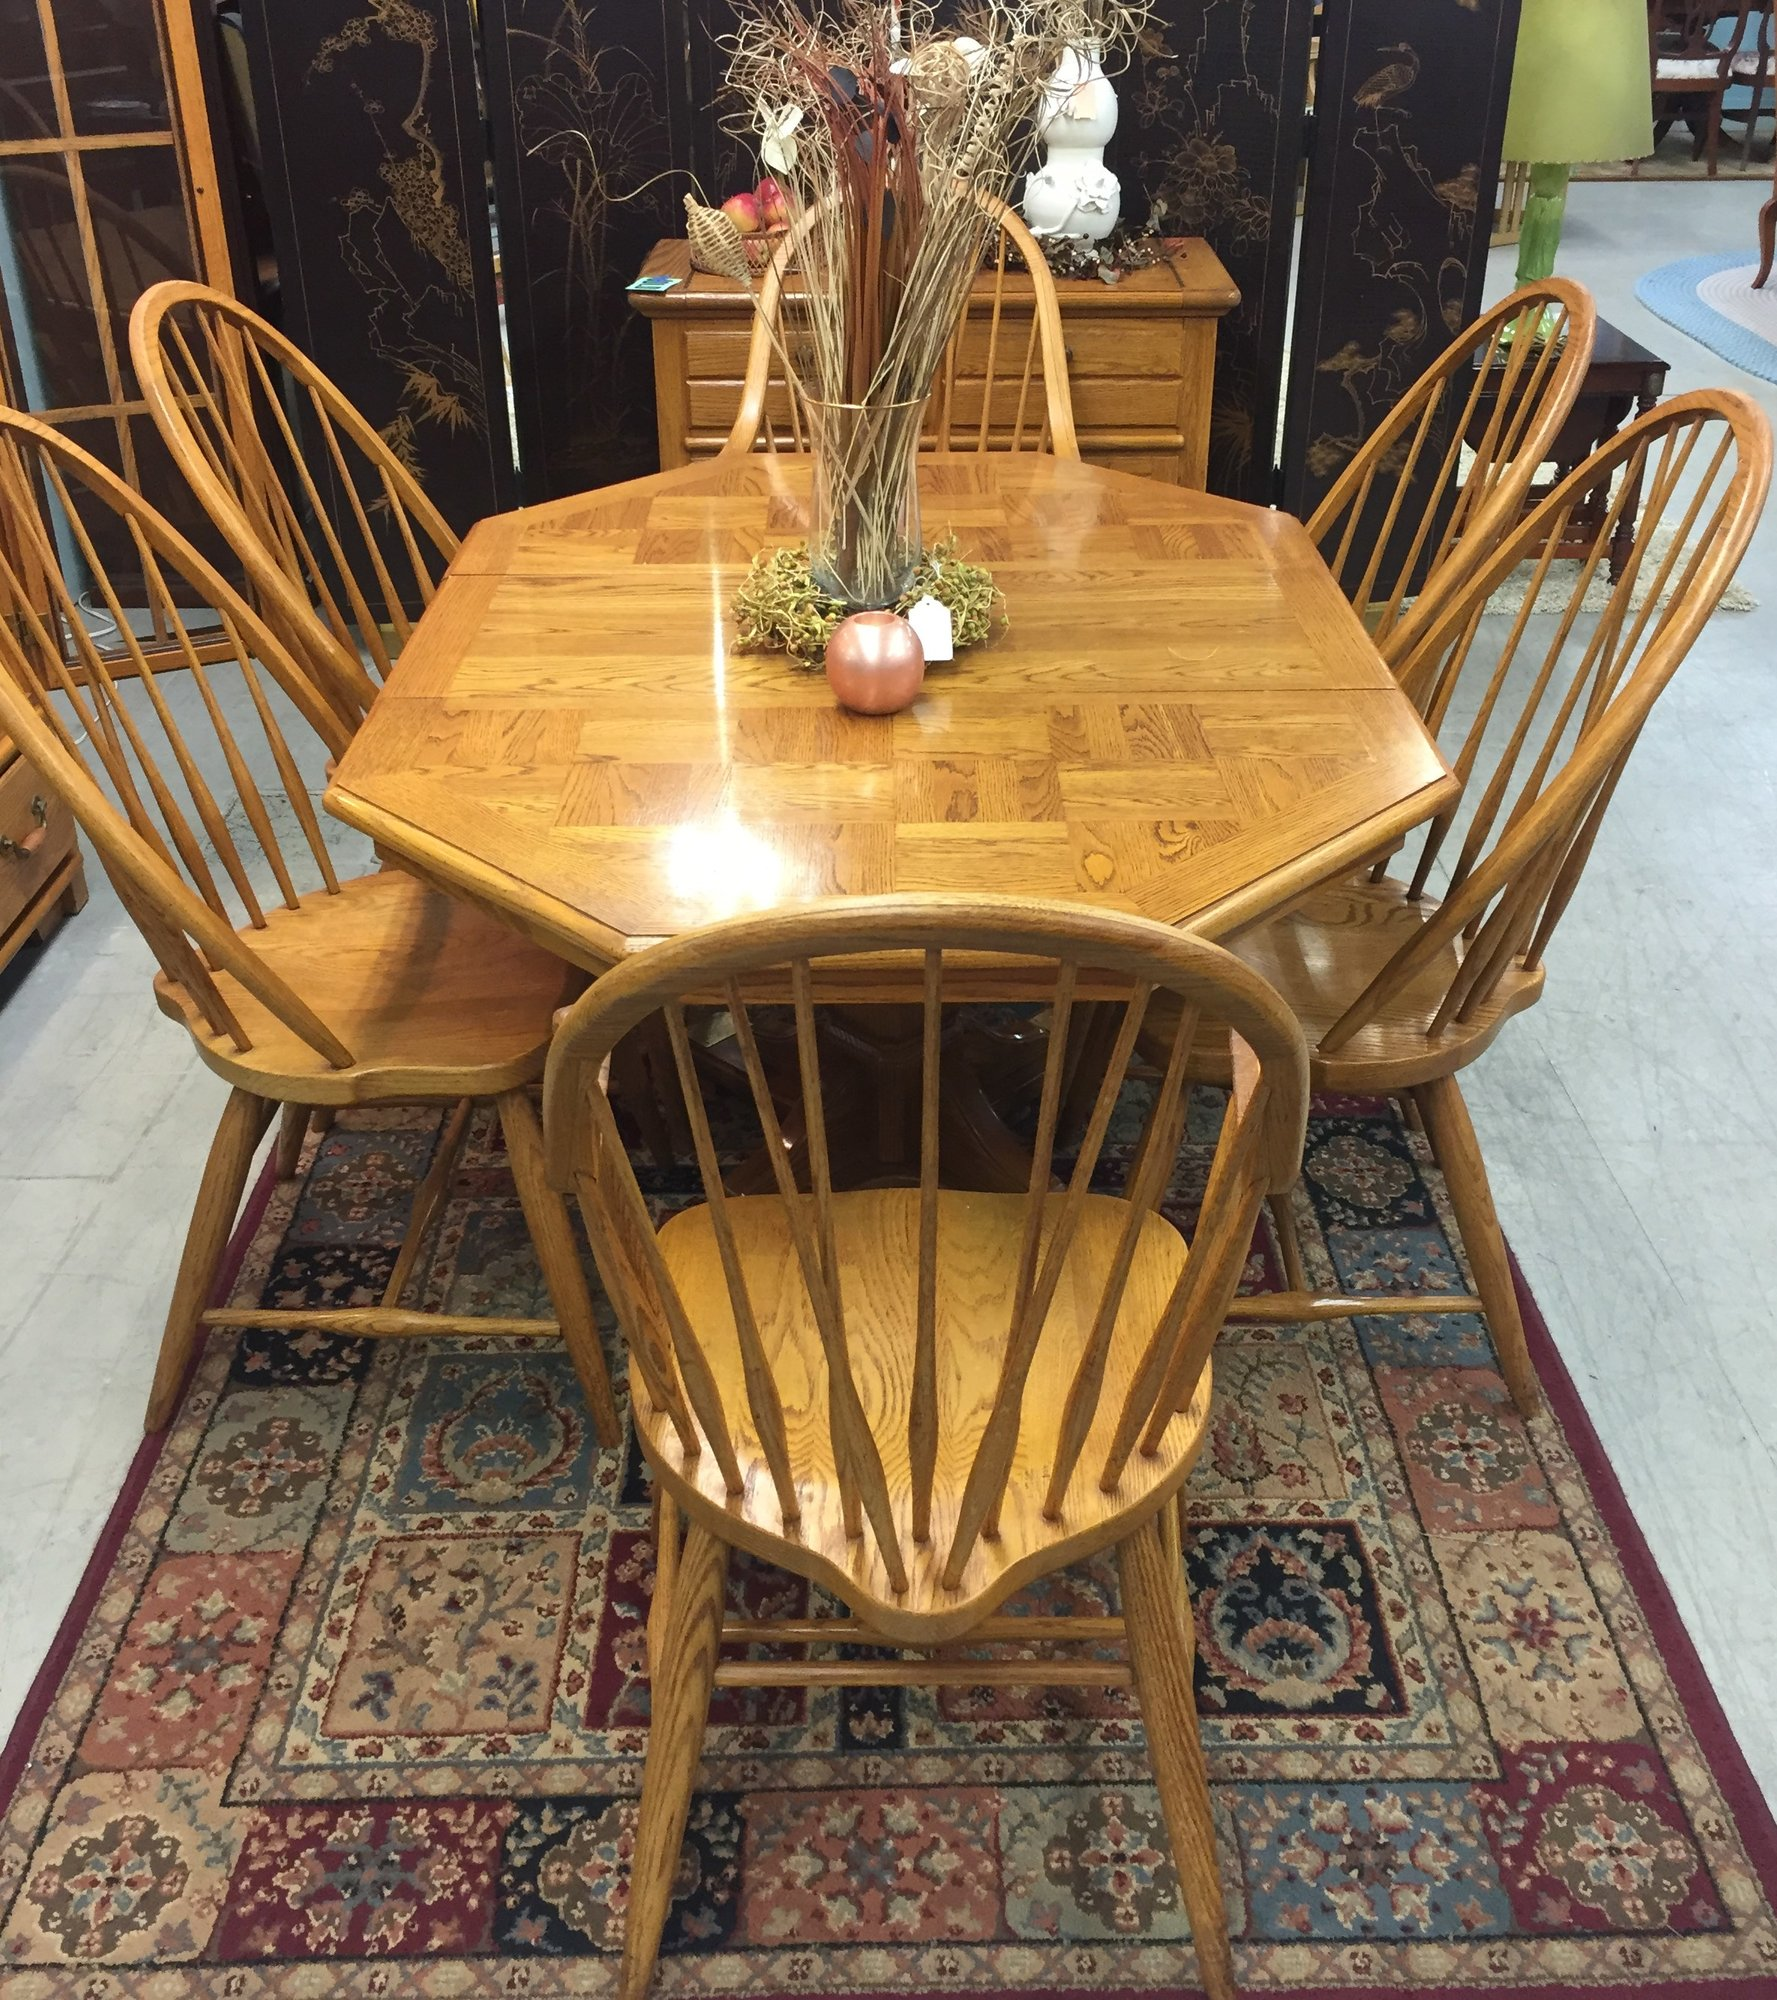 1 24476 Thomasville Oak Dining Table, 6 Chairs, 2 Leaves